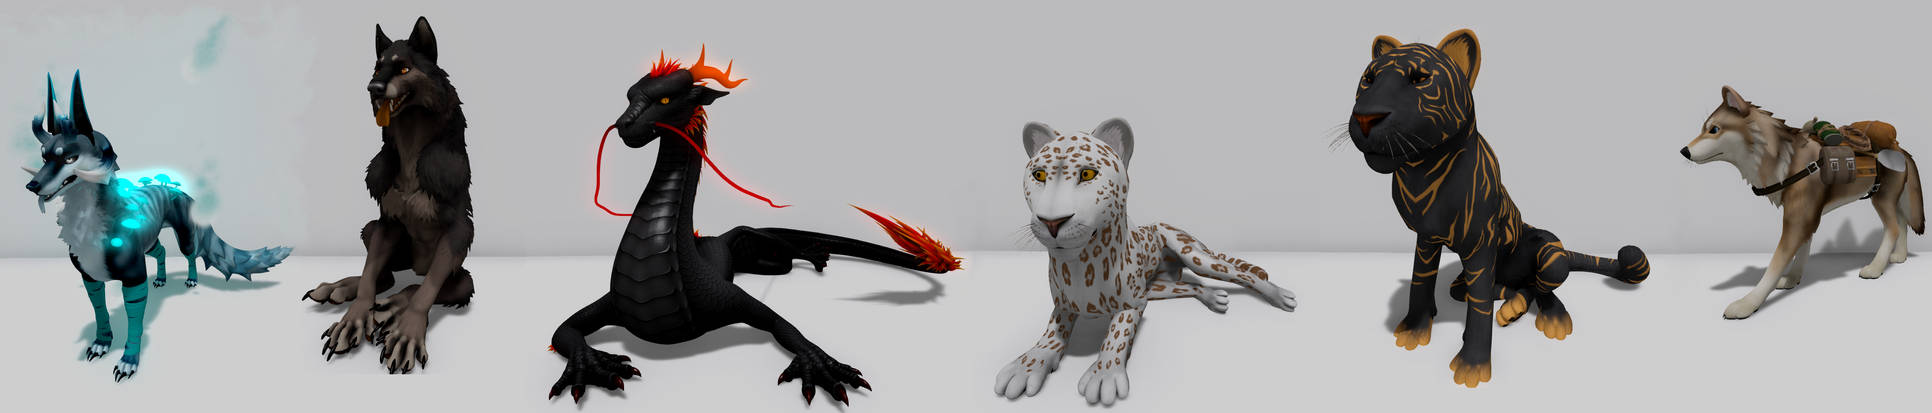 Second Life feral avies collection